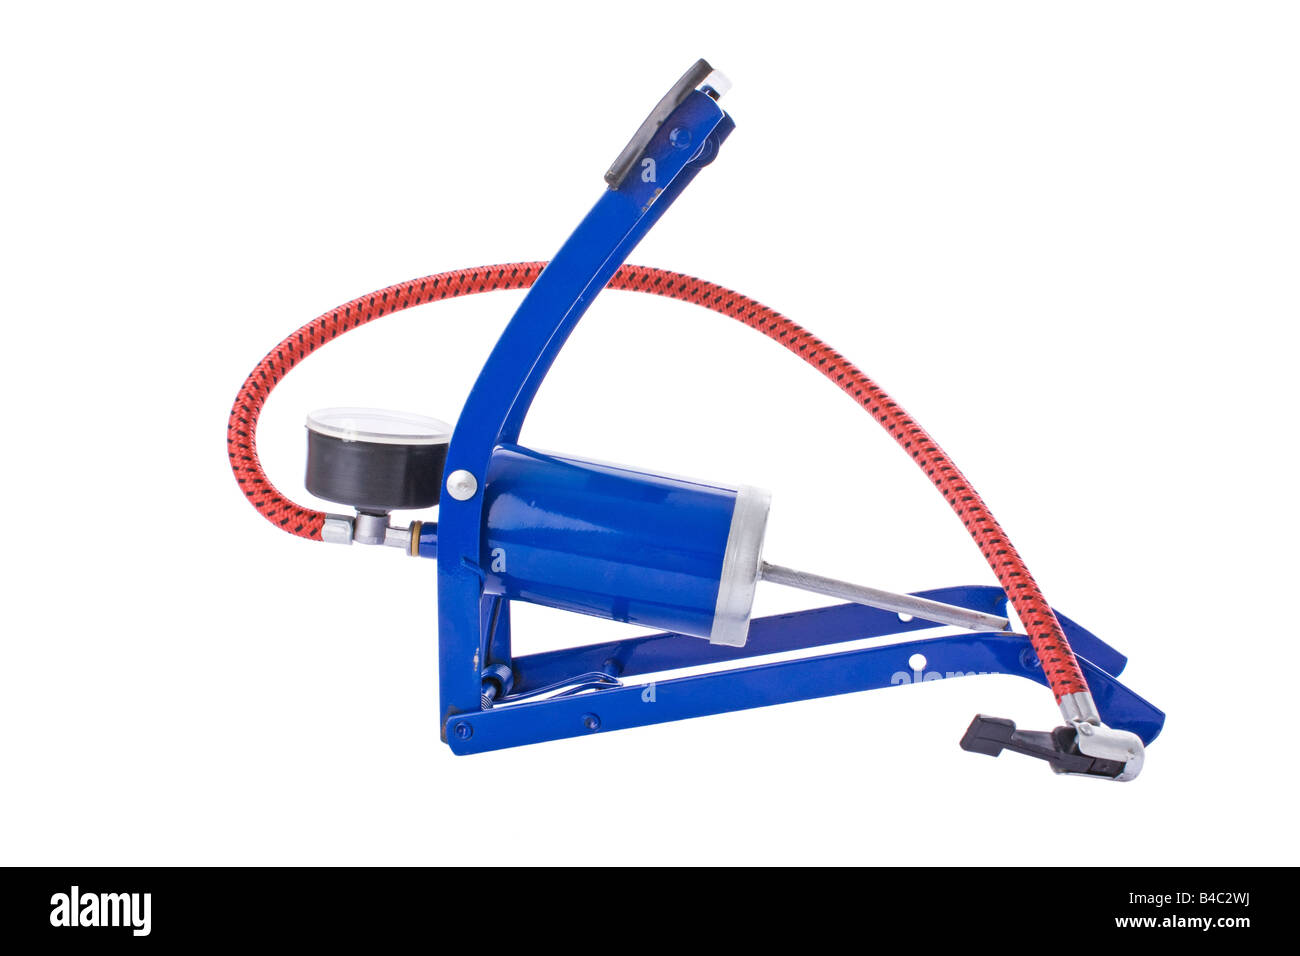 Foot pump isolated on a white background - Stock Image